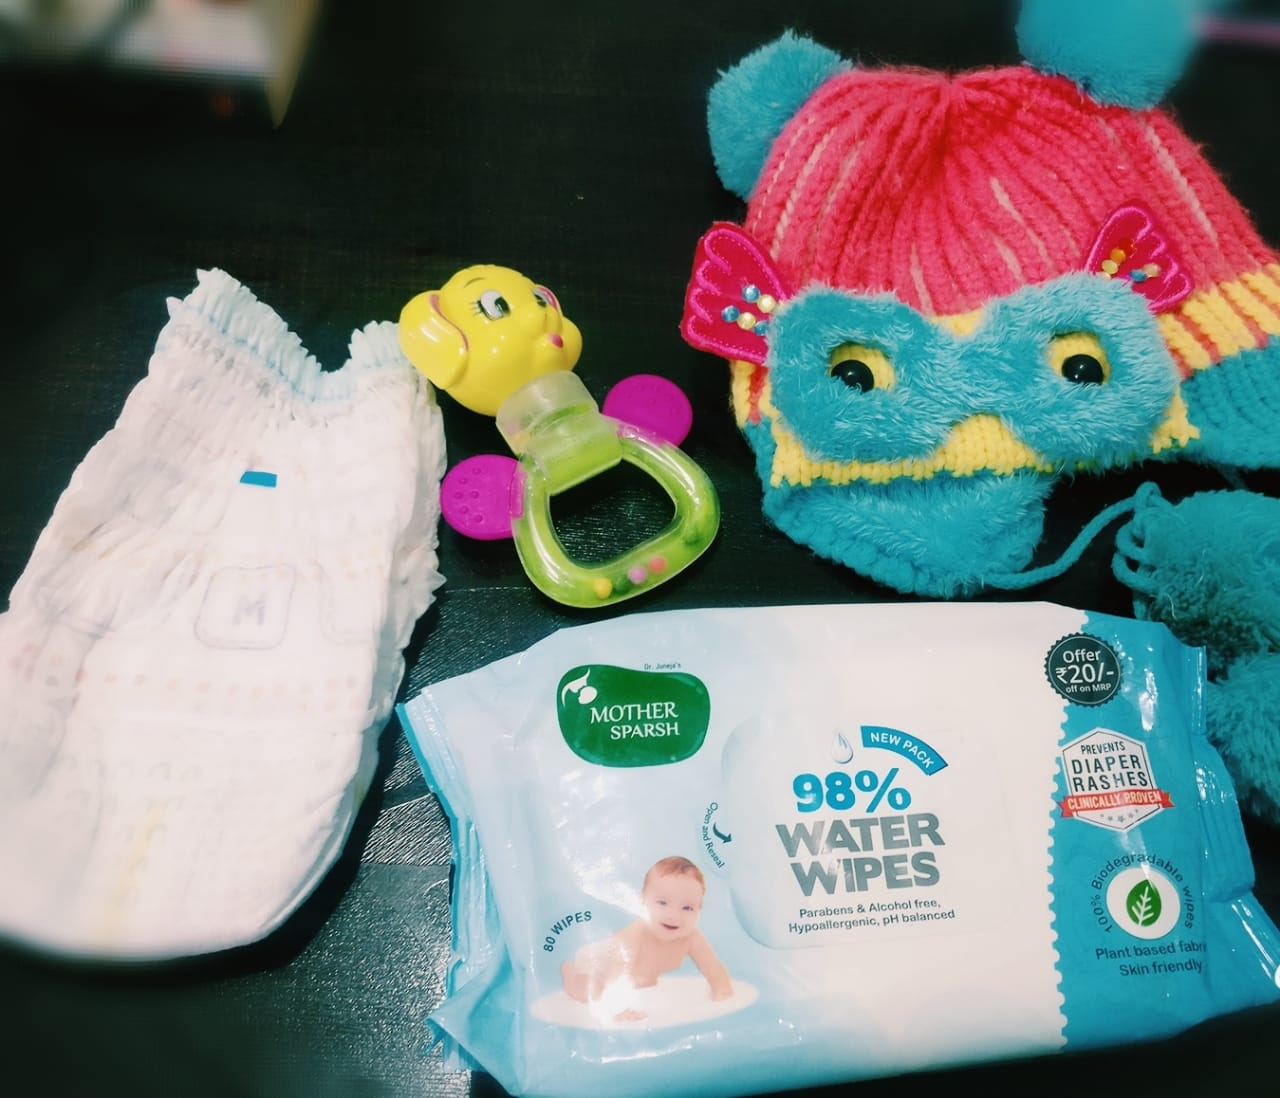 My First Time Experience with India's First Water Wipes